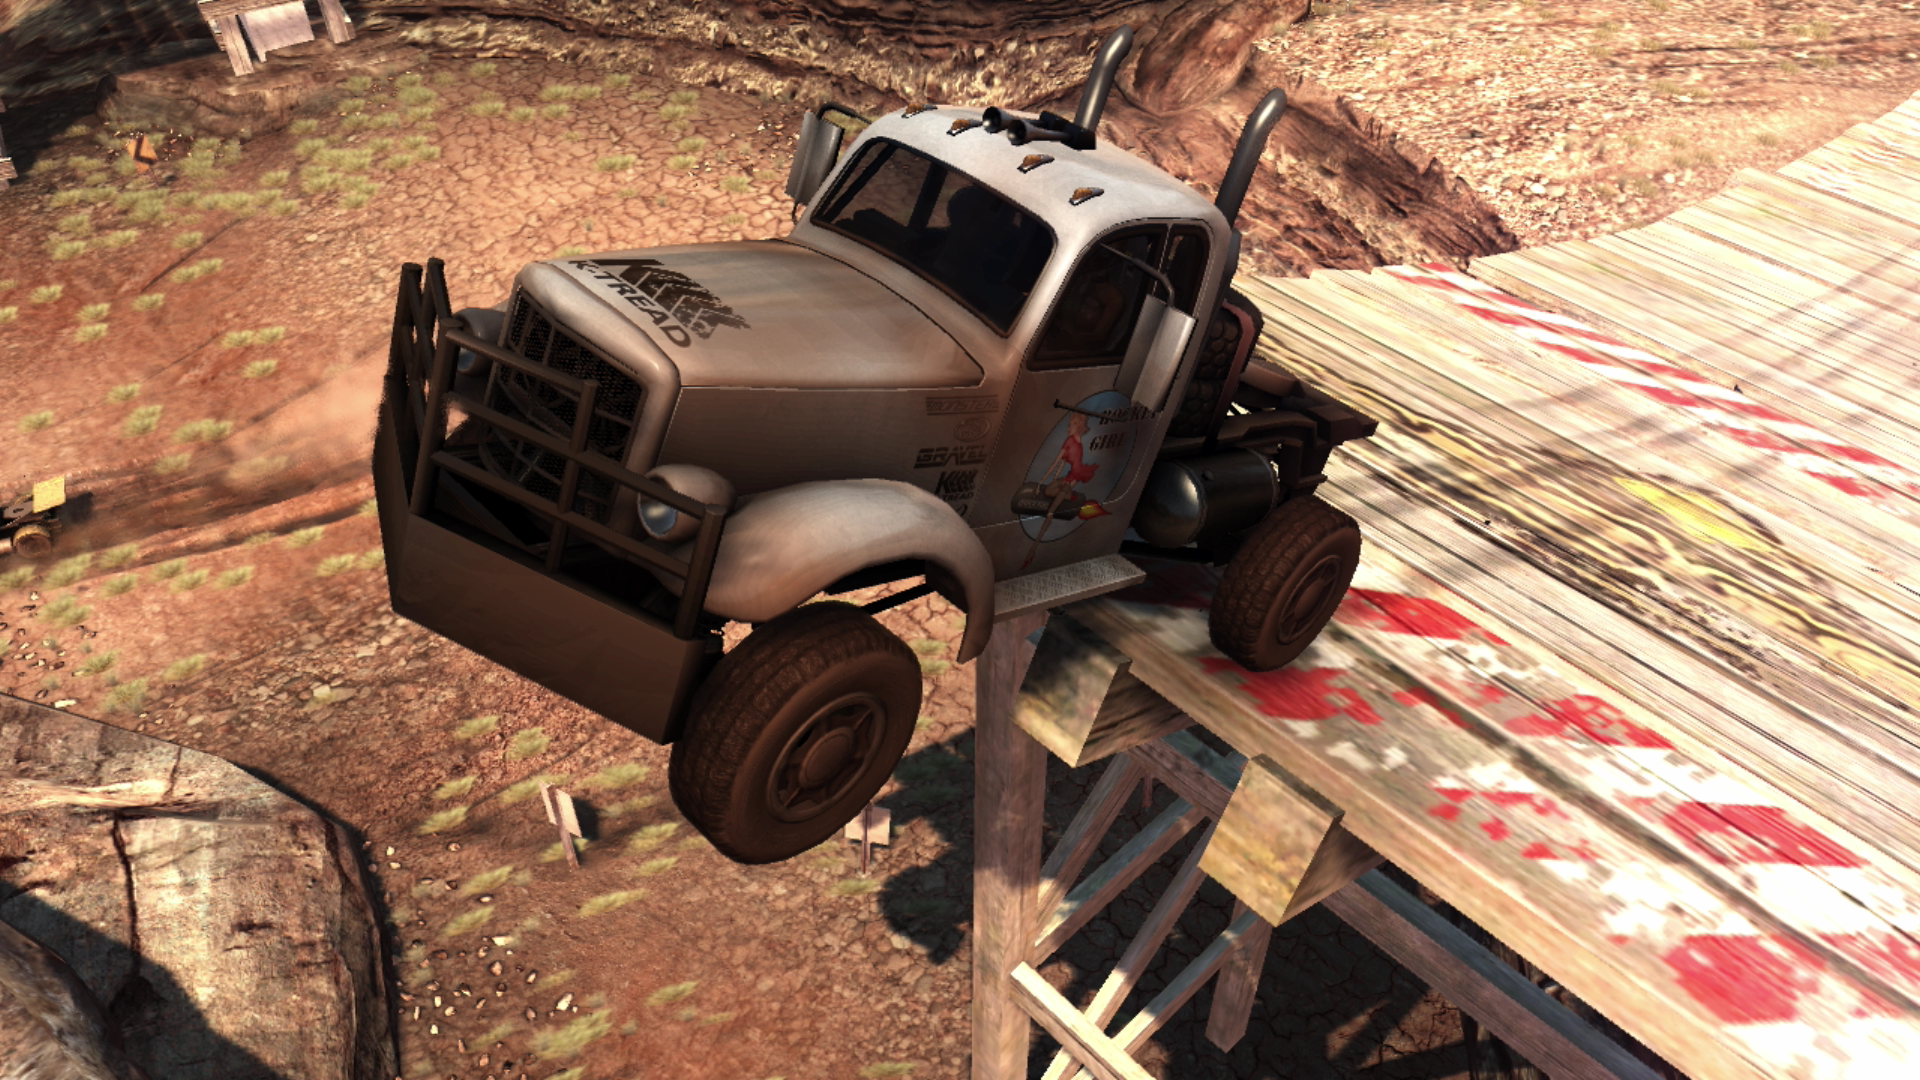 71feda7ff6c The Castro Varadero is a Big Rig that appears in the original MotorStorm